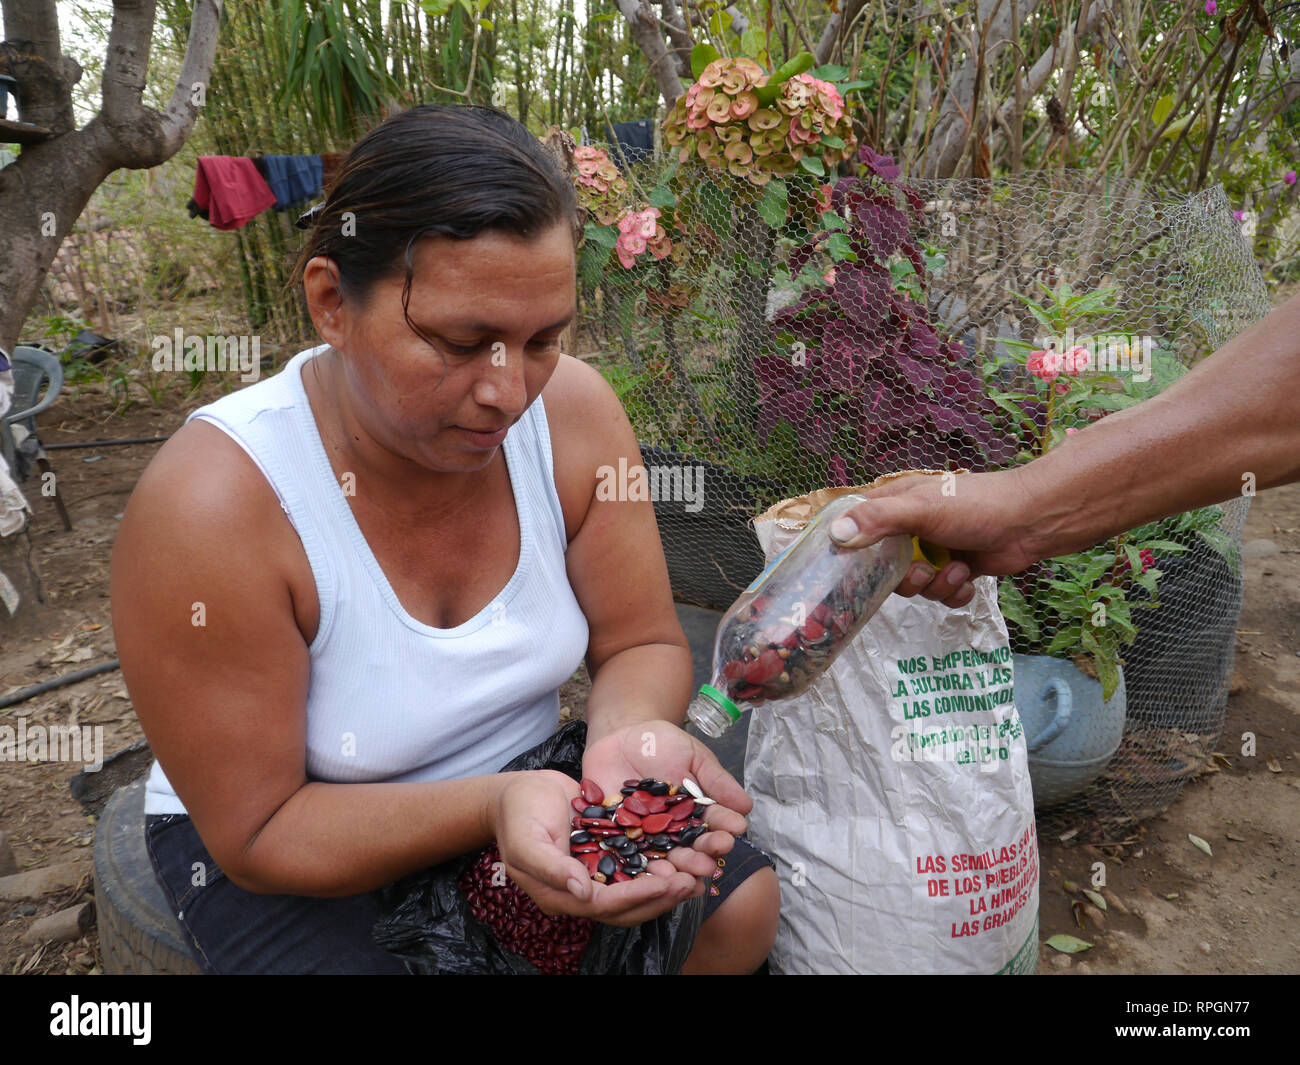 El Salvador  JDS projects in Jujutla. Family of Jose Alberto Garcia (41) and his wife Ana Arely Gonzalez (33) and their five children, Clarissa (17), Nidia (16), Celia (13), Katherine (10) and Emerson (7), village of El Nance. Ana with seeds from the family seed bank. - Stock Image